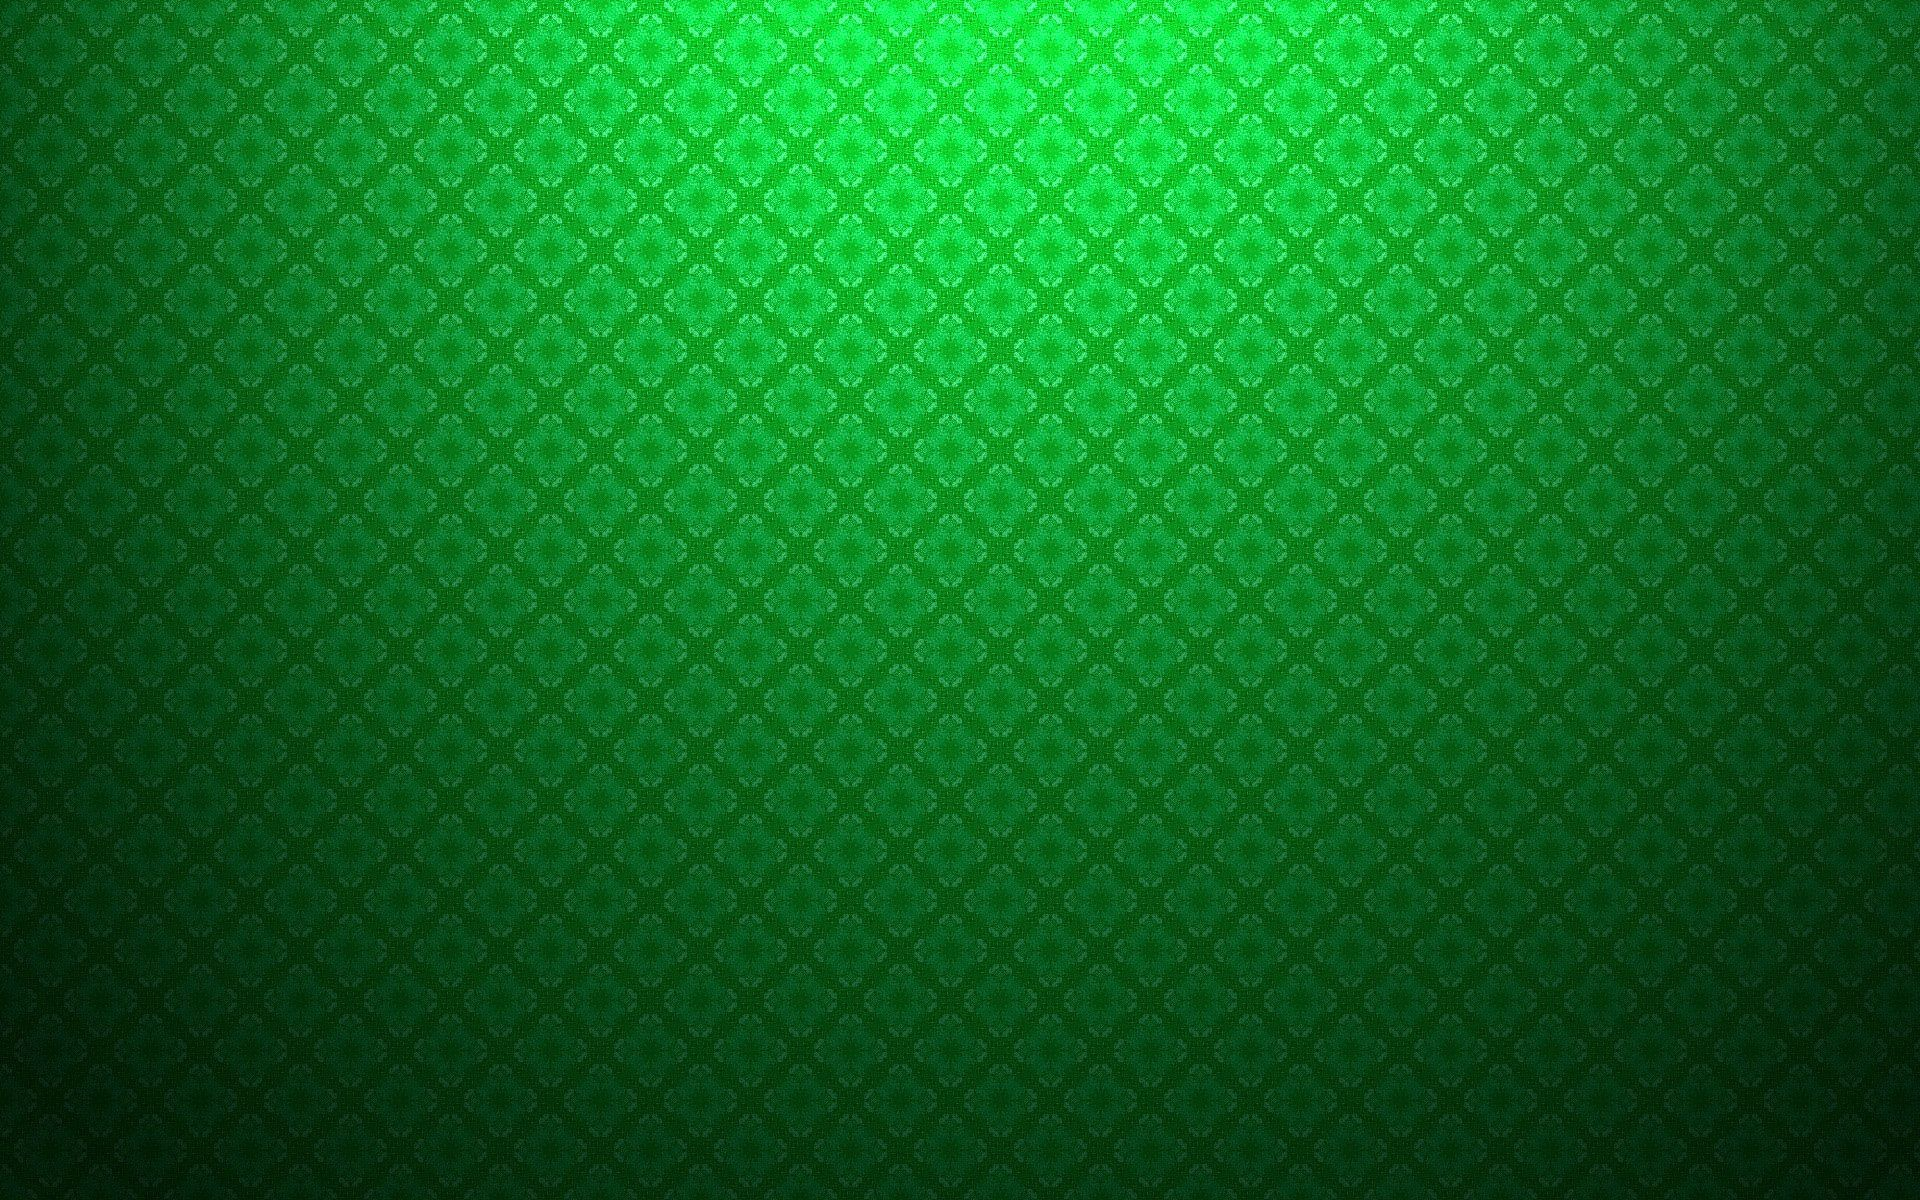 Green Background wallpaper | 1920x1200 | #57492